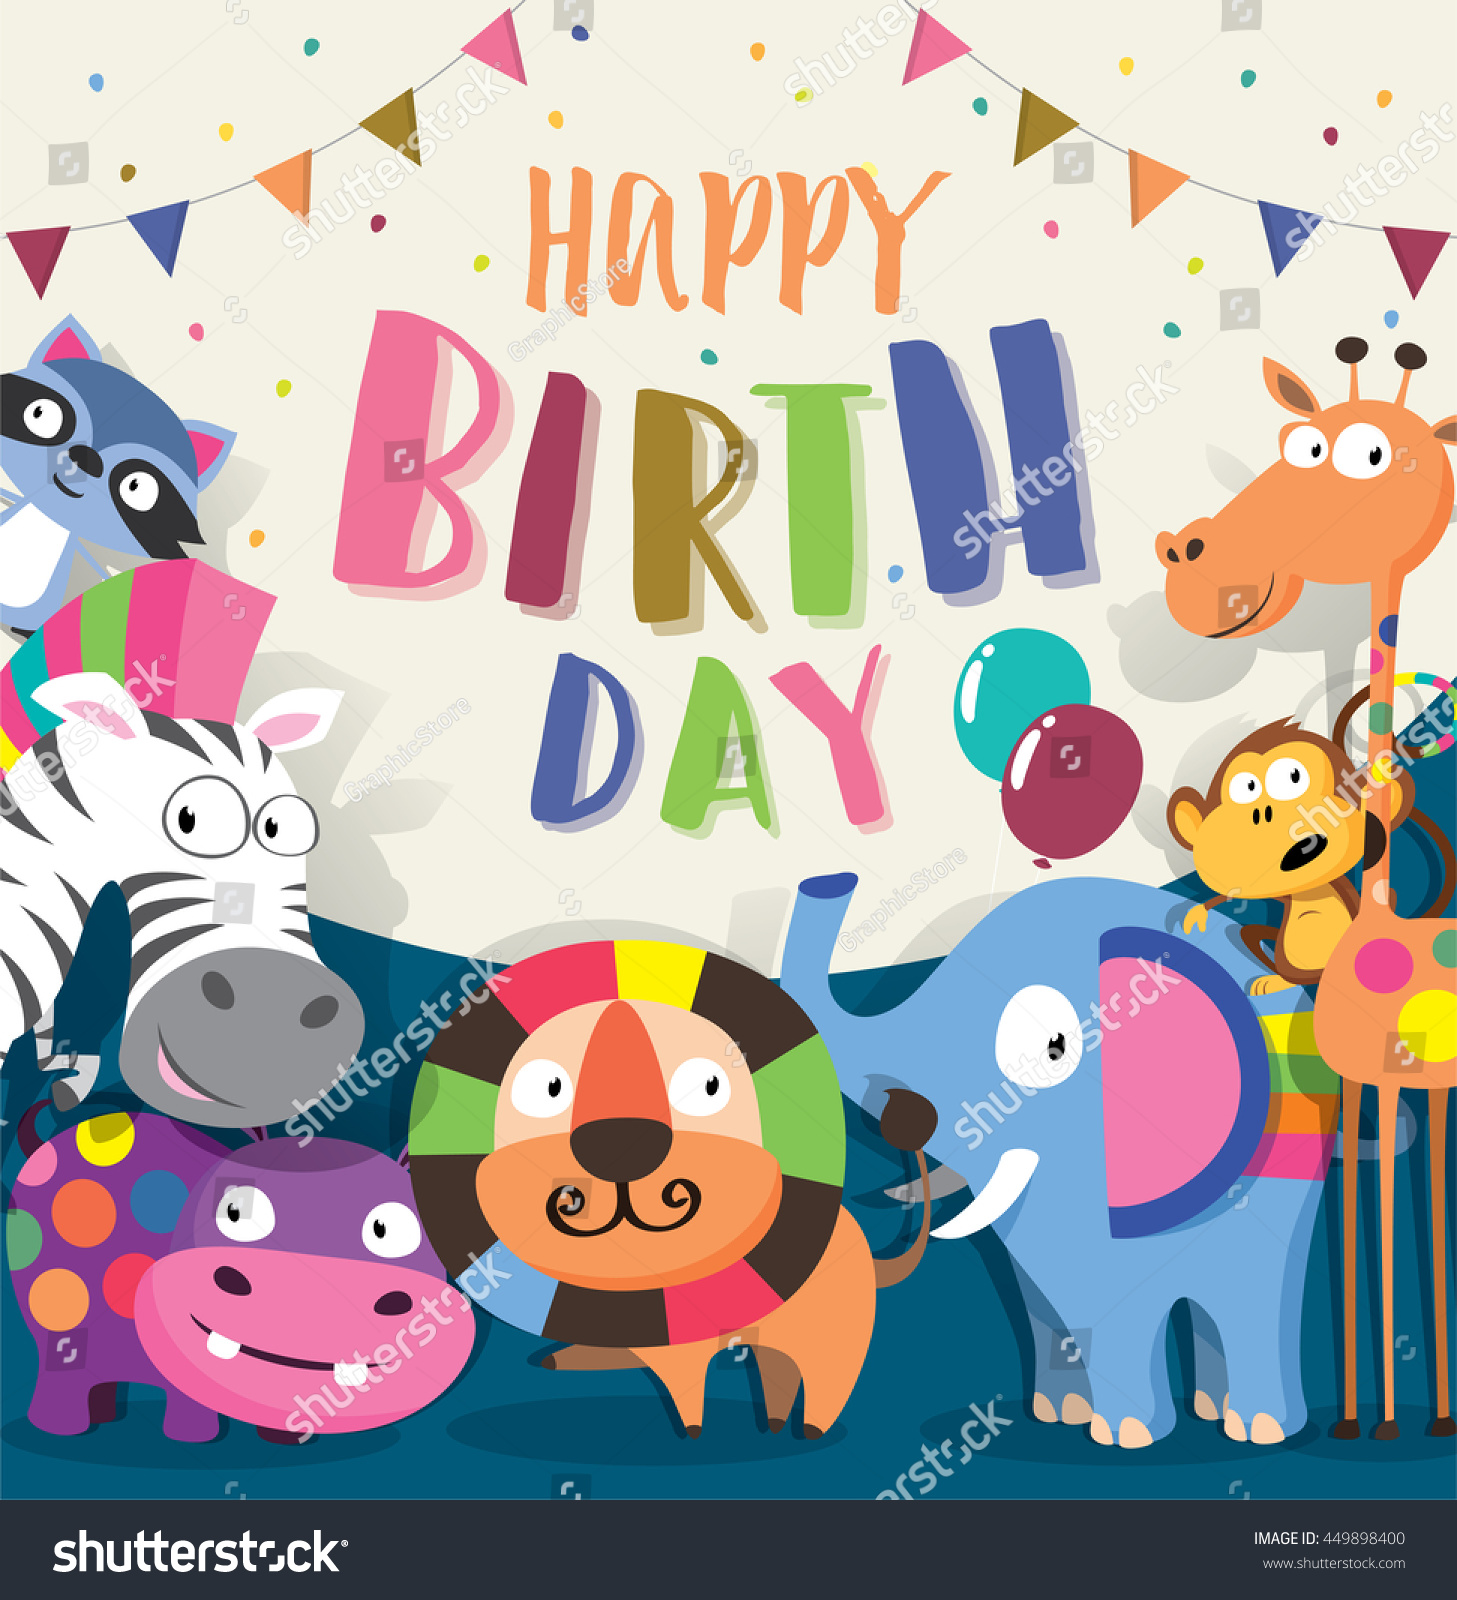 Birthday card with cute animal